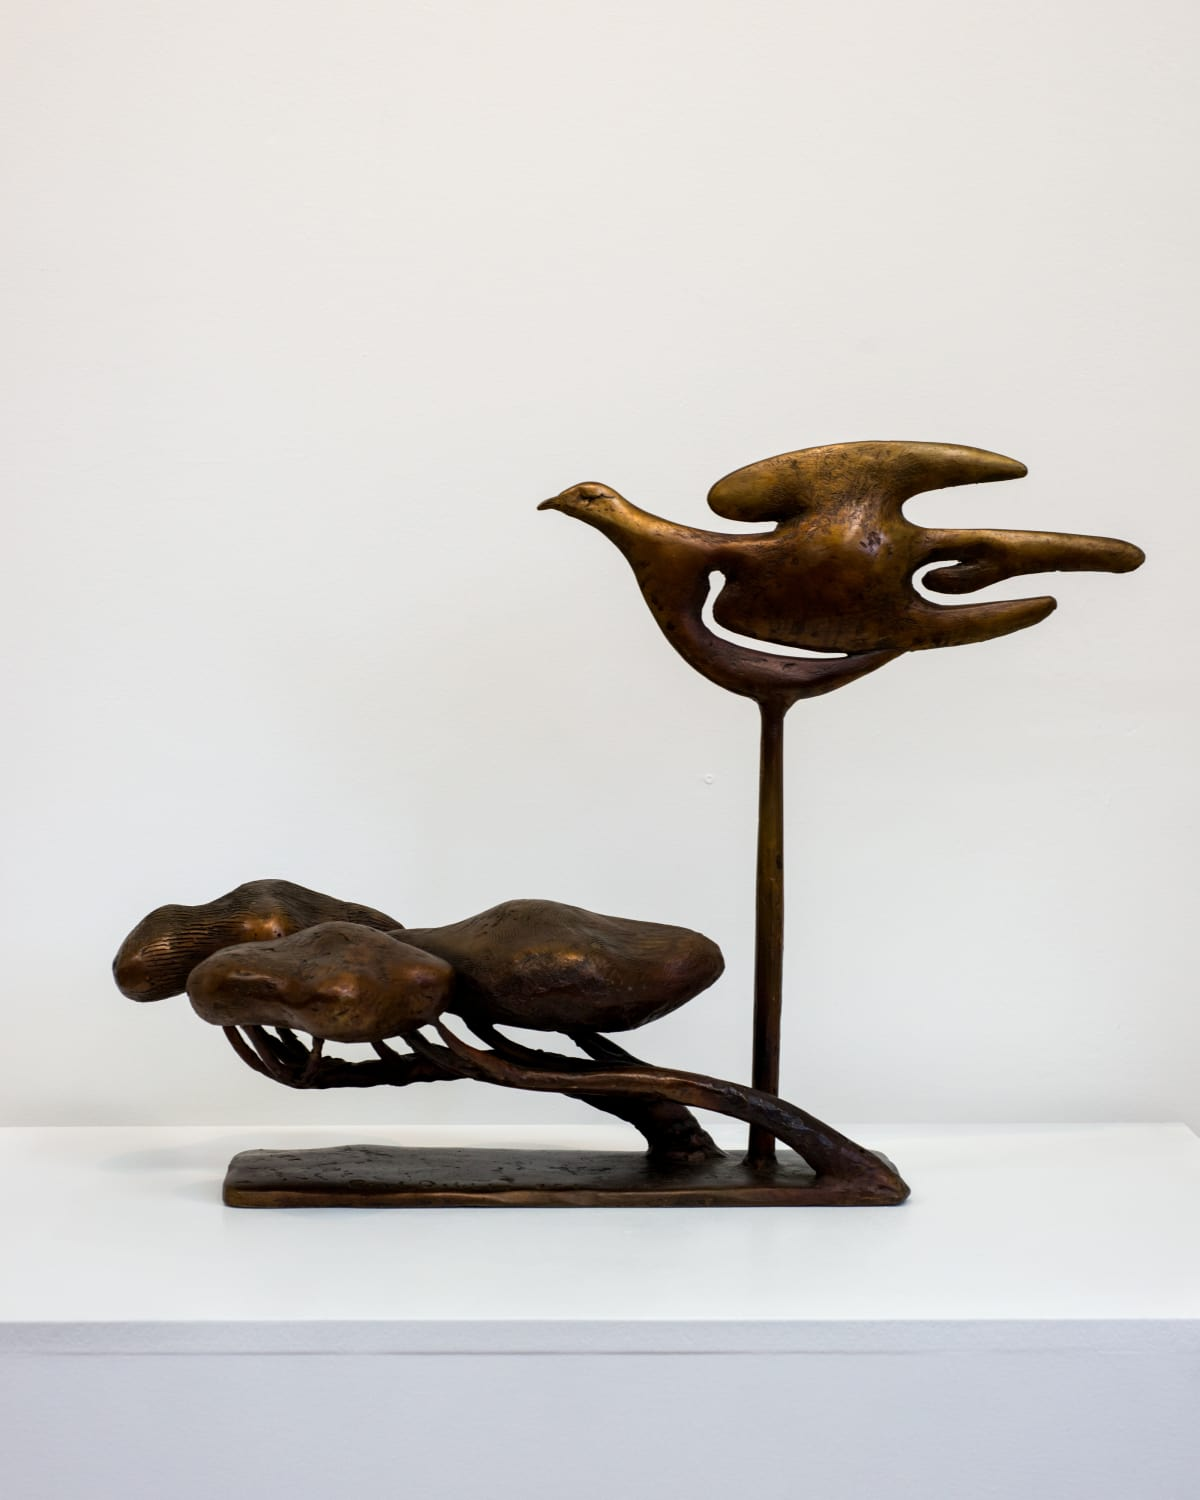 Paul DIBBLE Flying High with Binney Third Study Bronze 15.7 x 28.3 x 4.7 in 40 x 72 x 12 cm #1/1